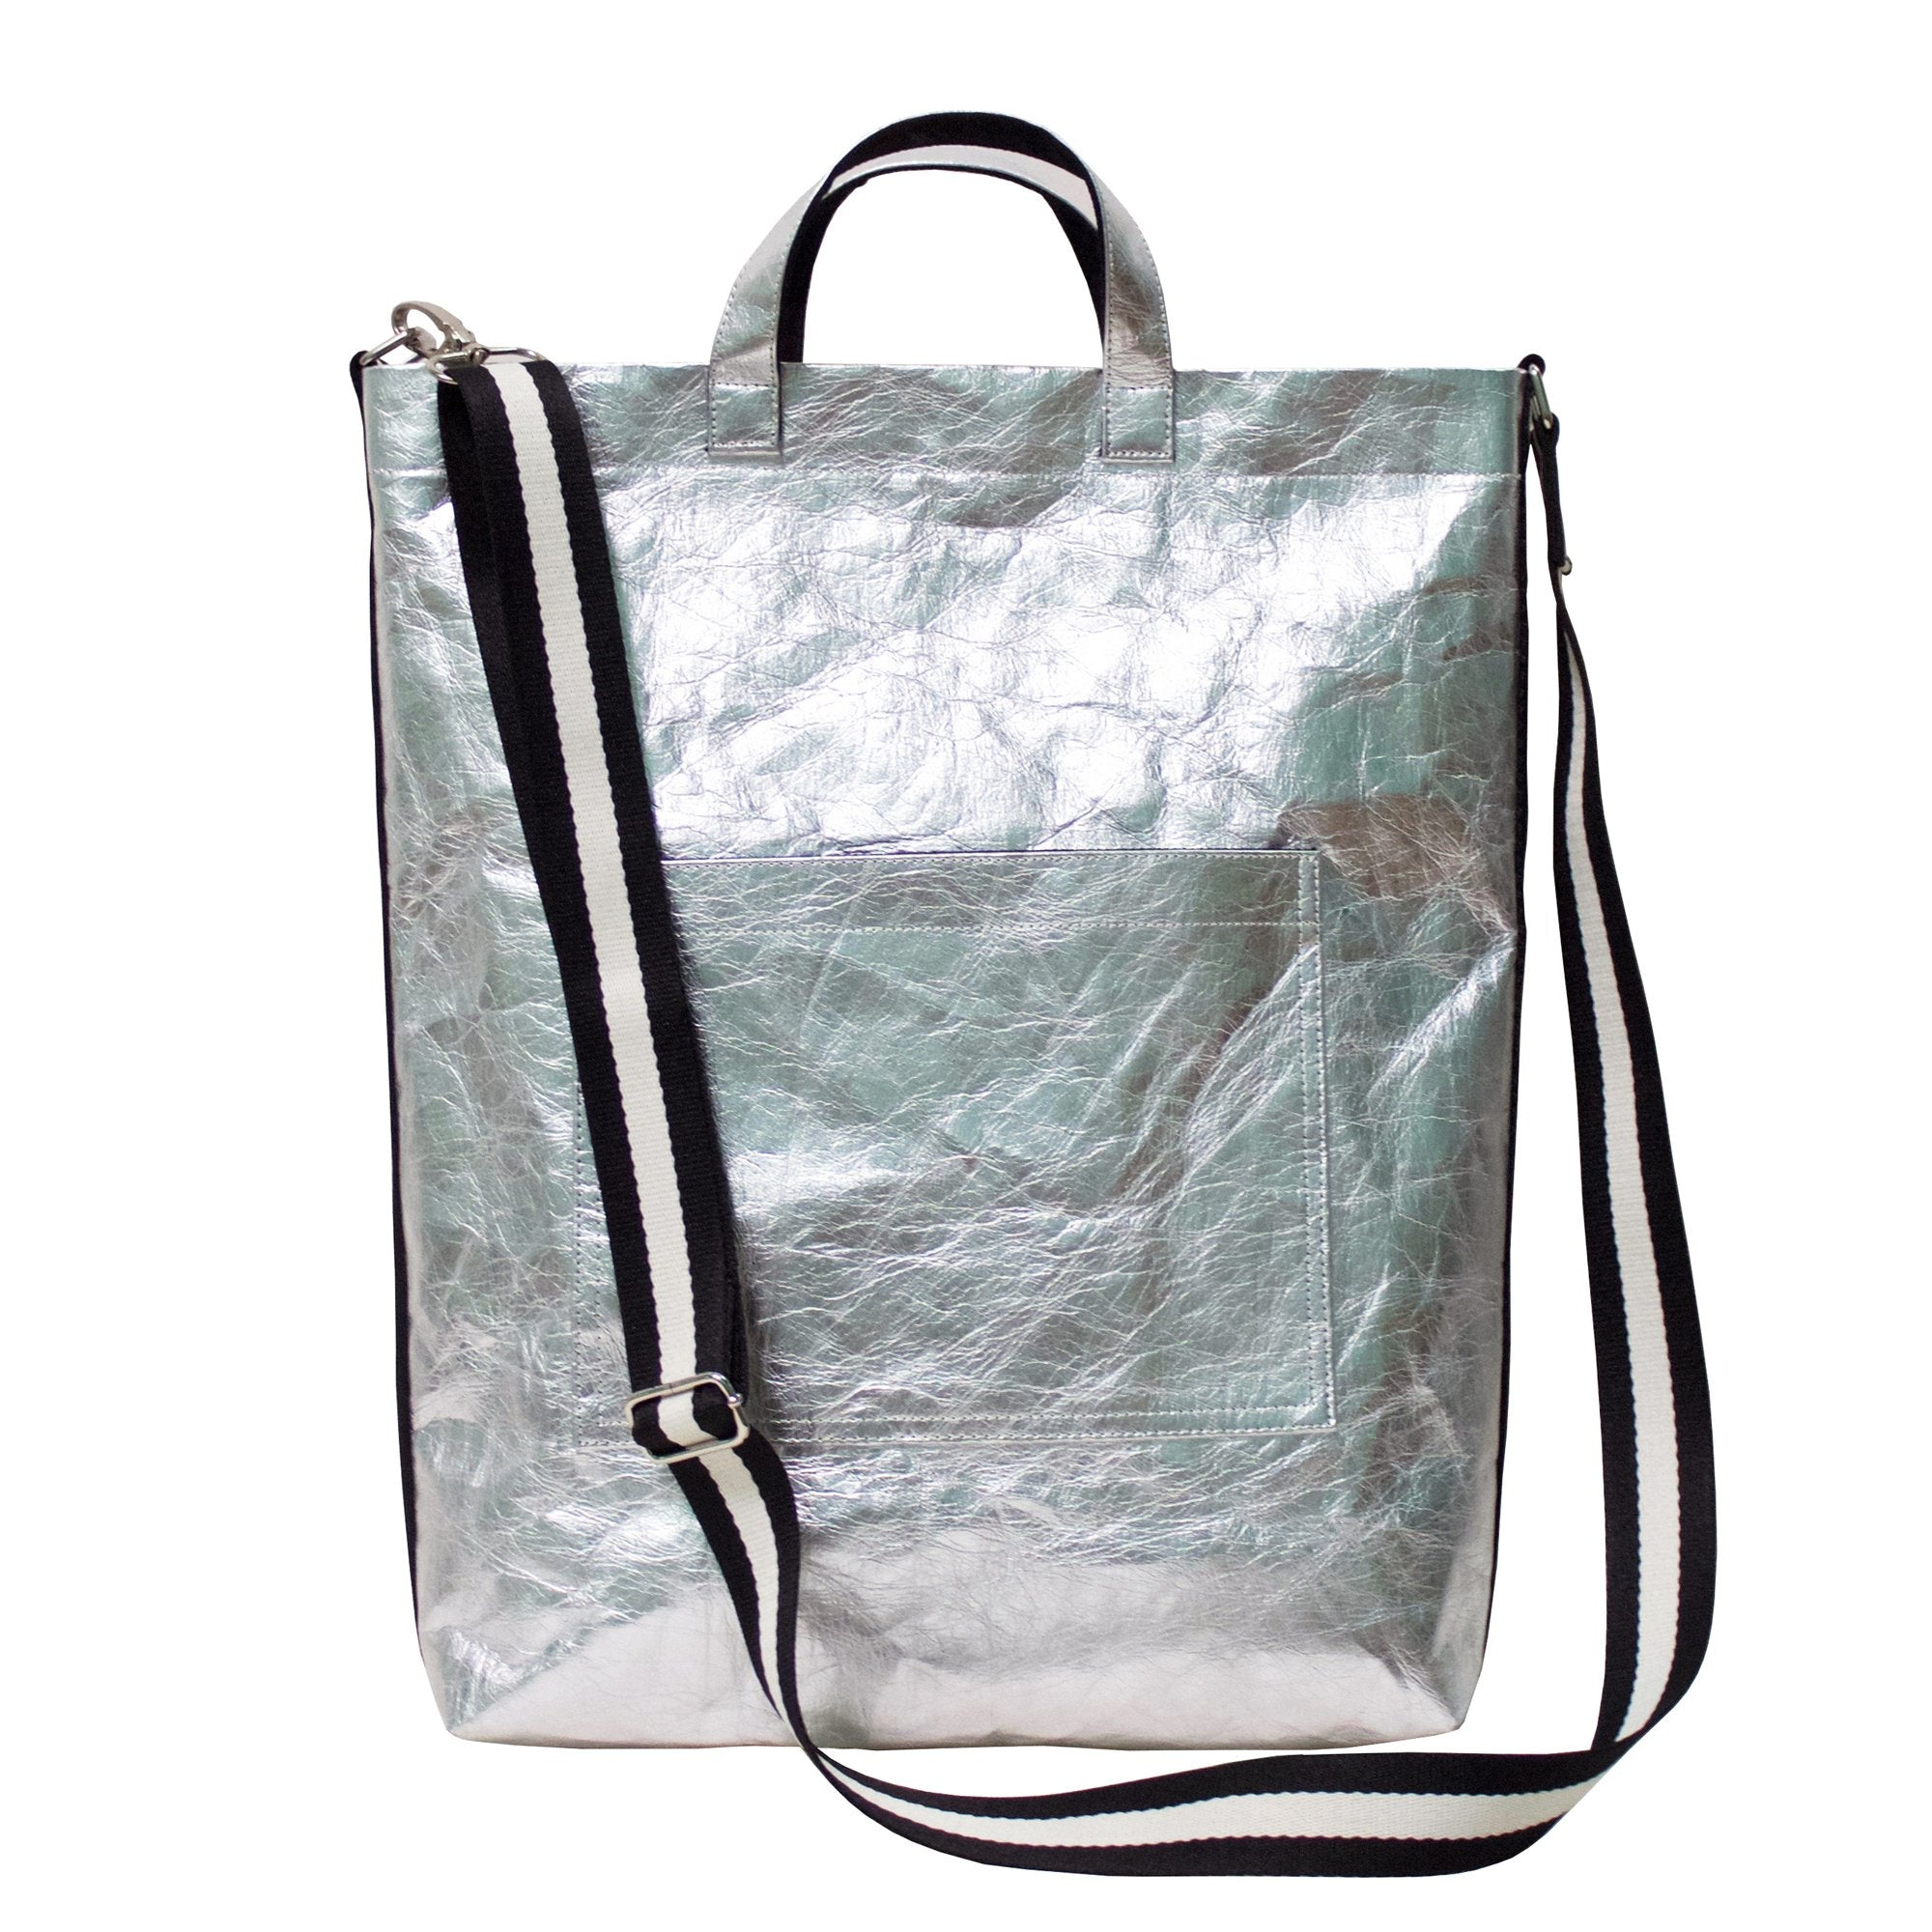 Demeter Silver Shoulder / Cross Body Bag made from Metallic Washable Paper